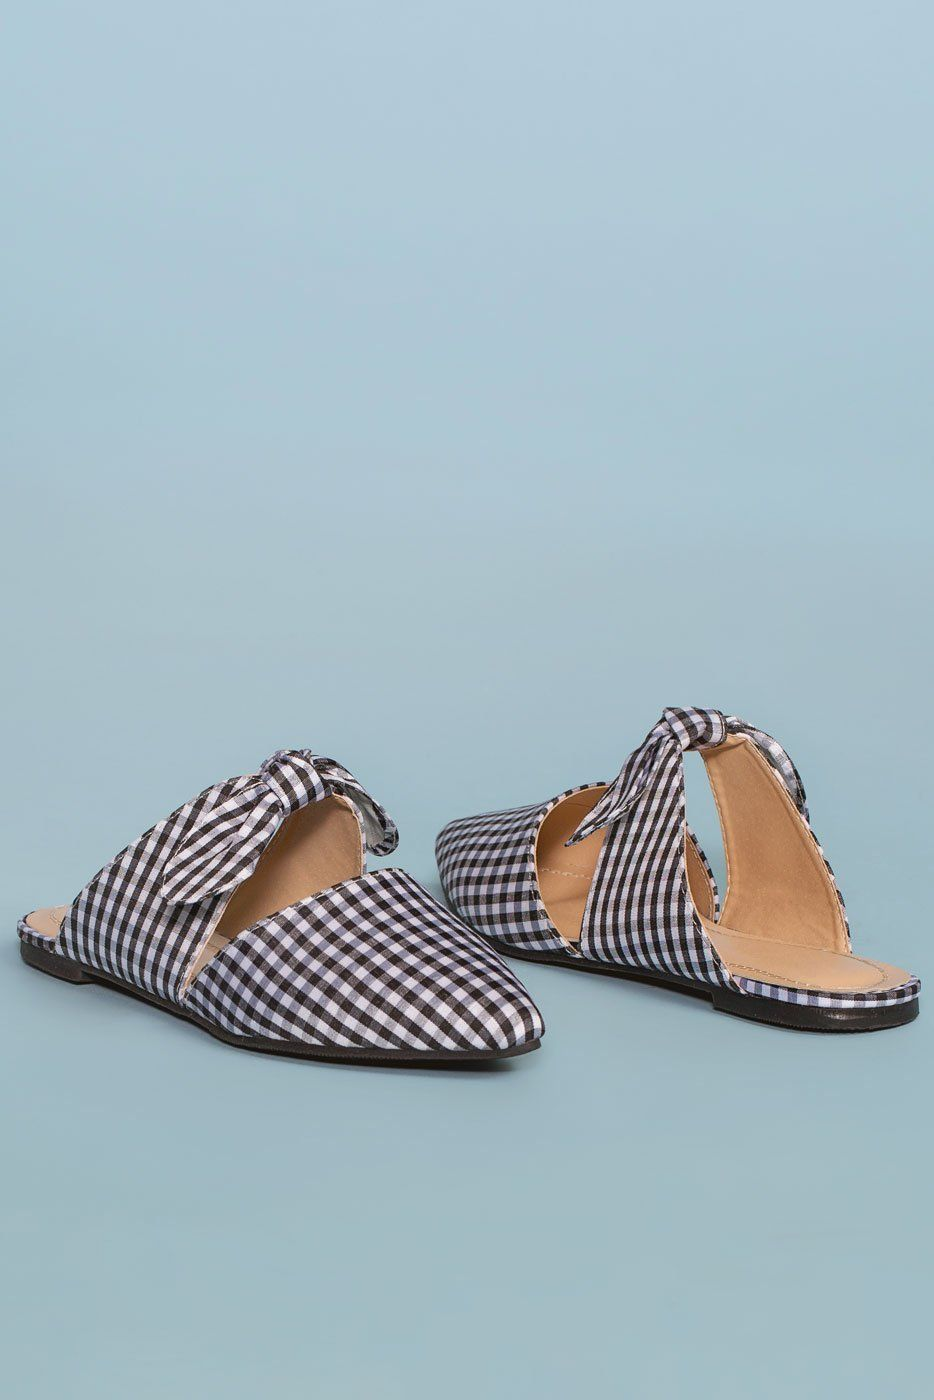 9d7caa31c5f4 Fiona Bow Pointy Black and White Toe Mules - Gingham